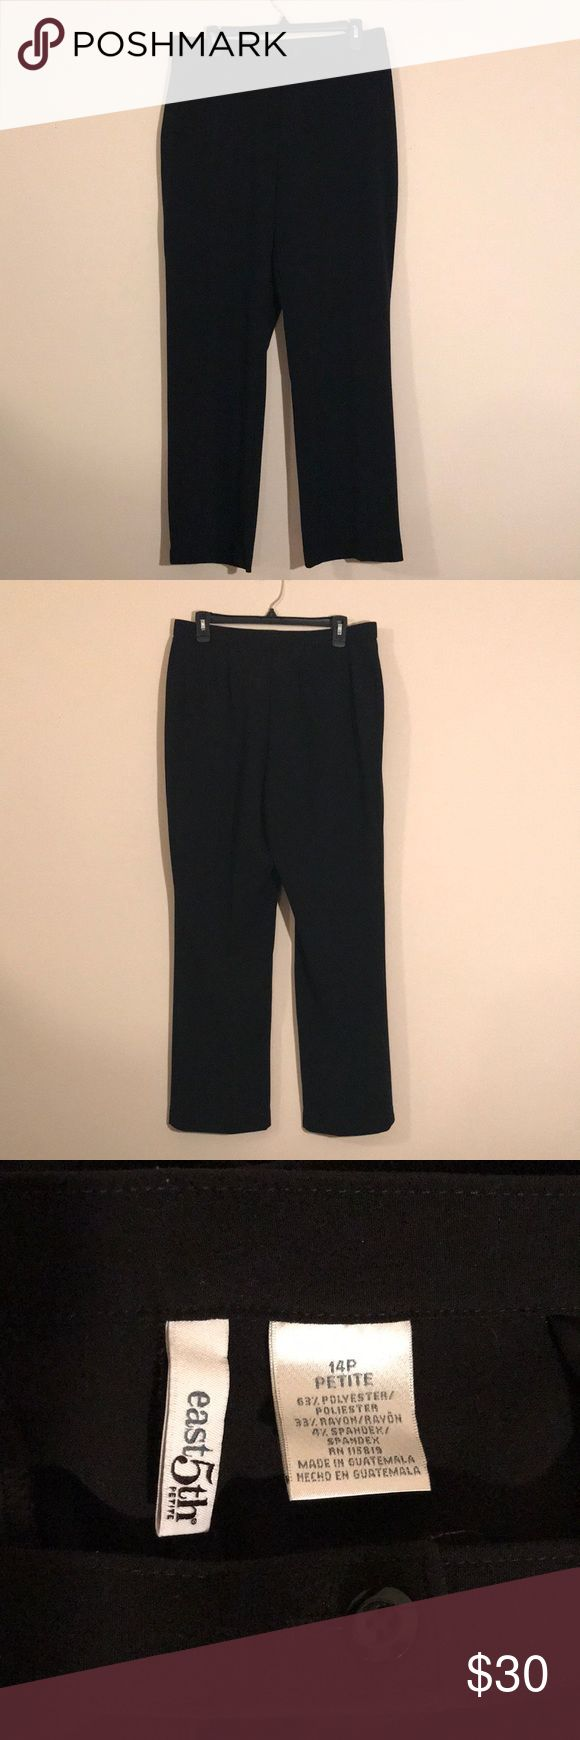 East 5th Dress Pants East 5th Black Size 14P Petite dress pants - one fake back pocket - button, metal clasp, and zipper - like new! Feel free to ask any questions! Sorry, no trades. East 5th Pants Trousers